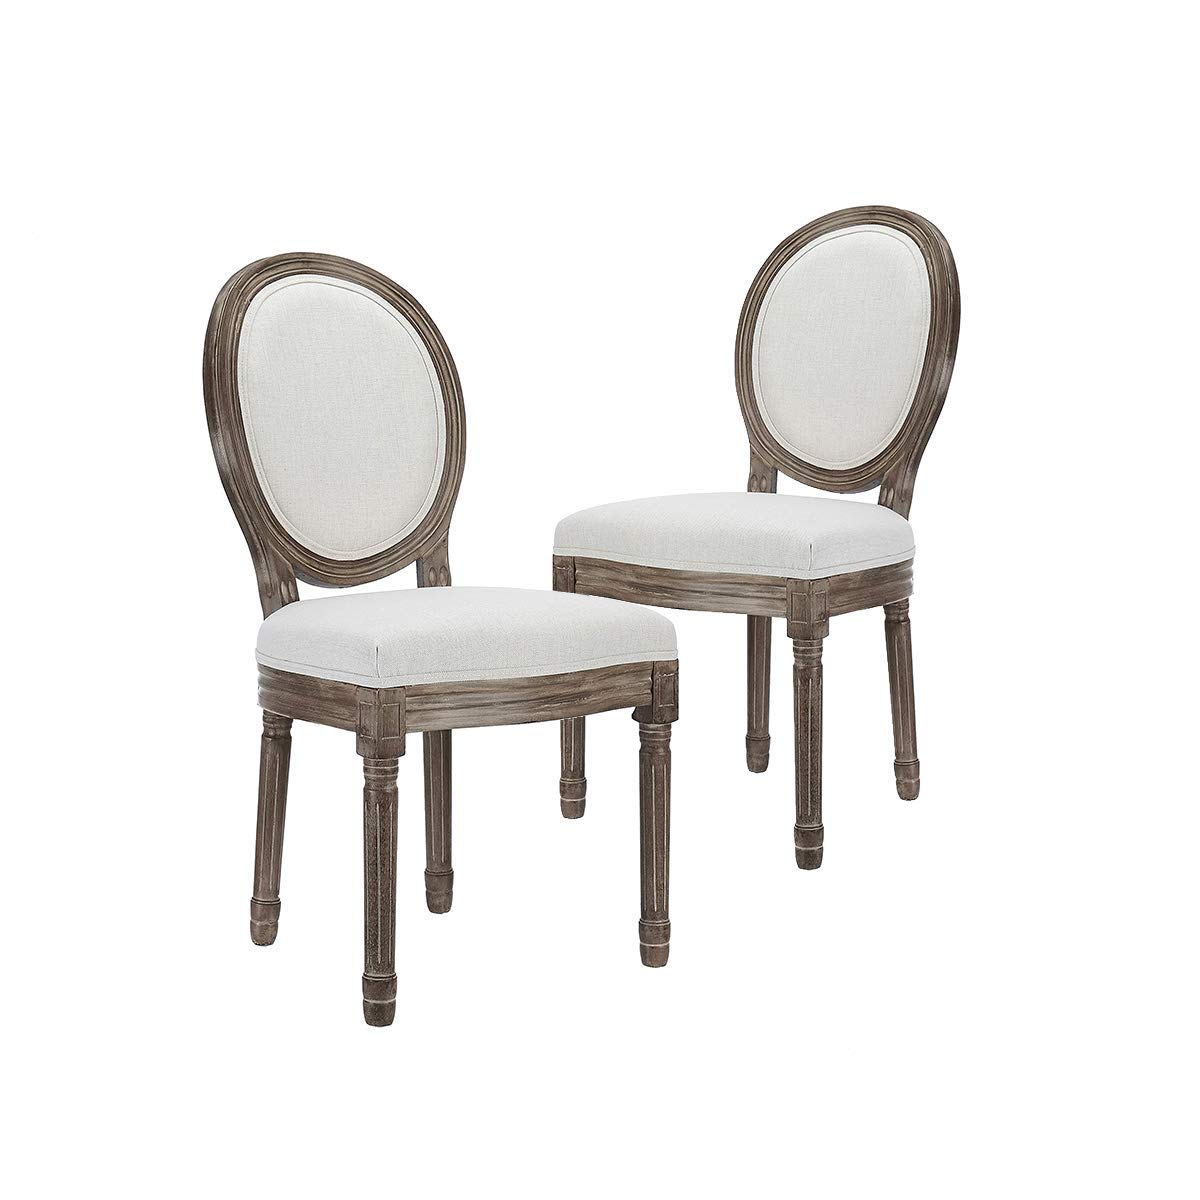 CangLong Farmhouse Dining Room Chairs, Fabric Round, Beige